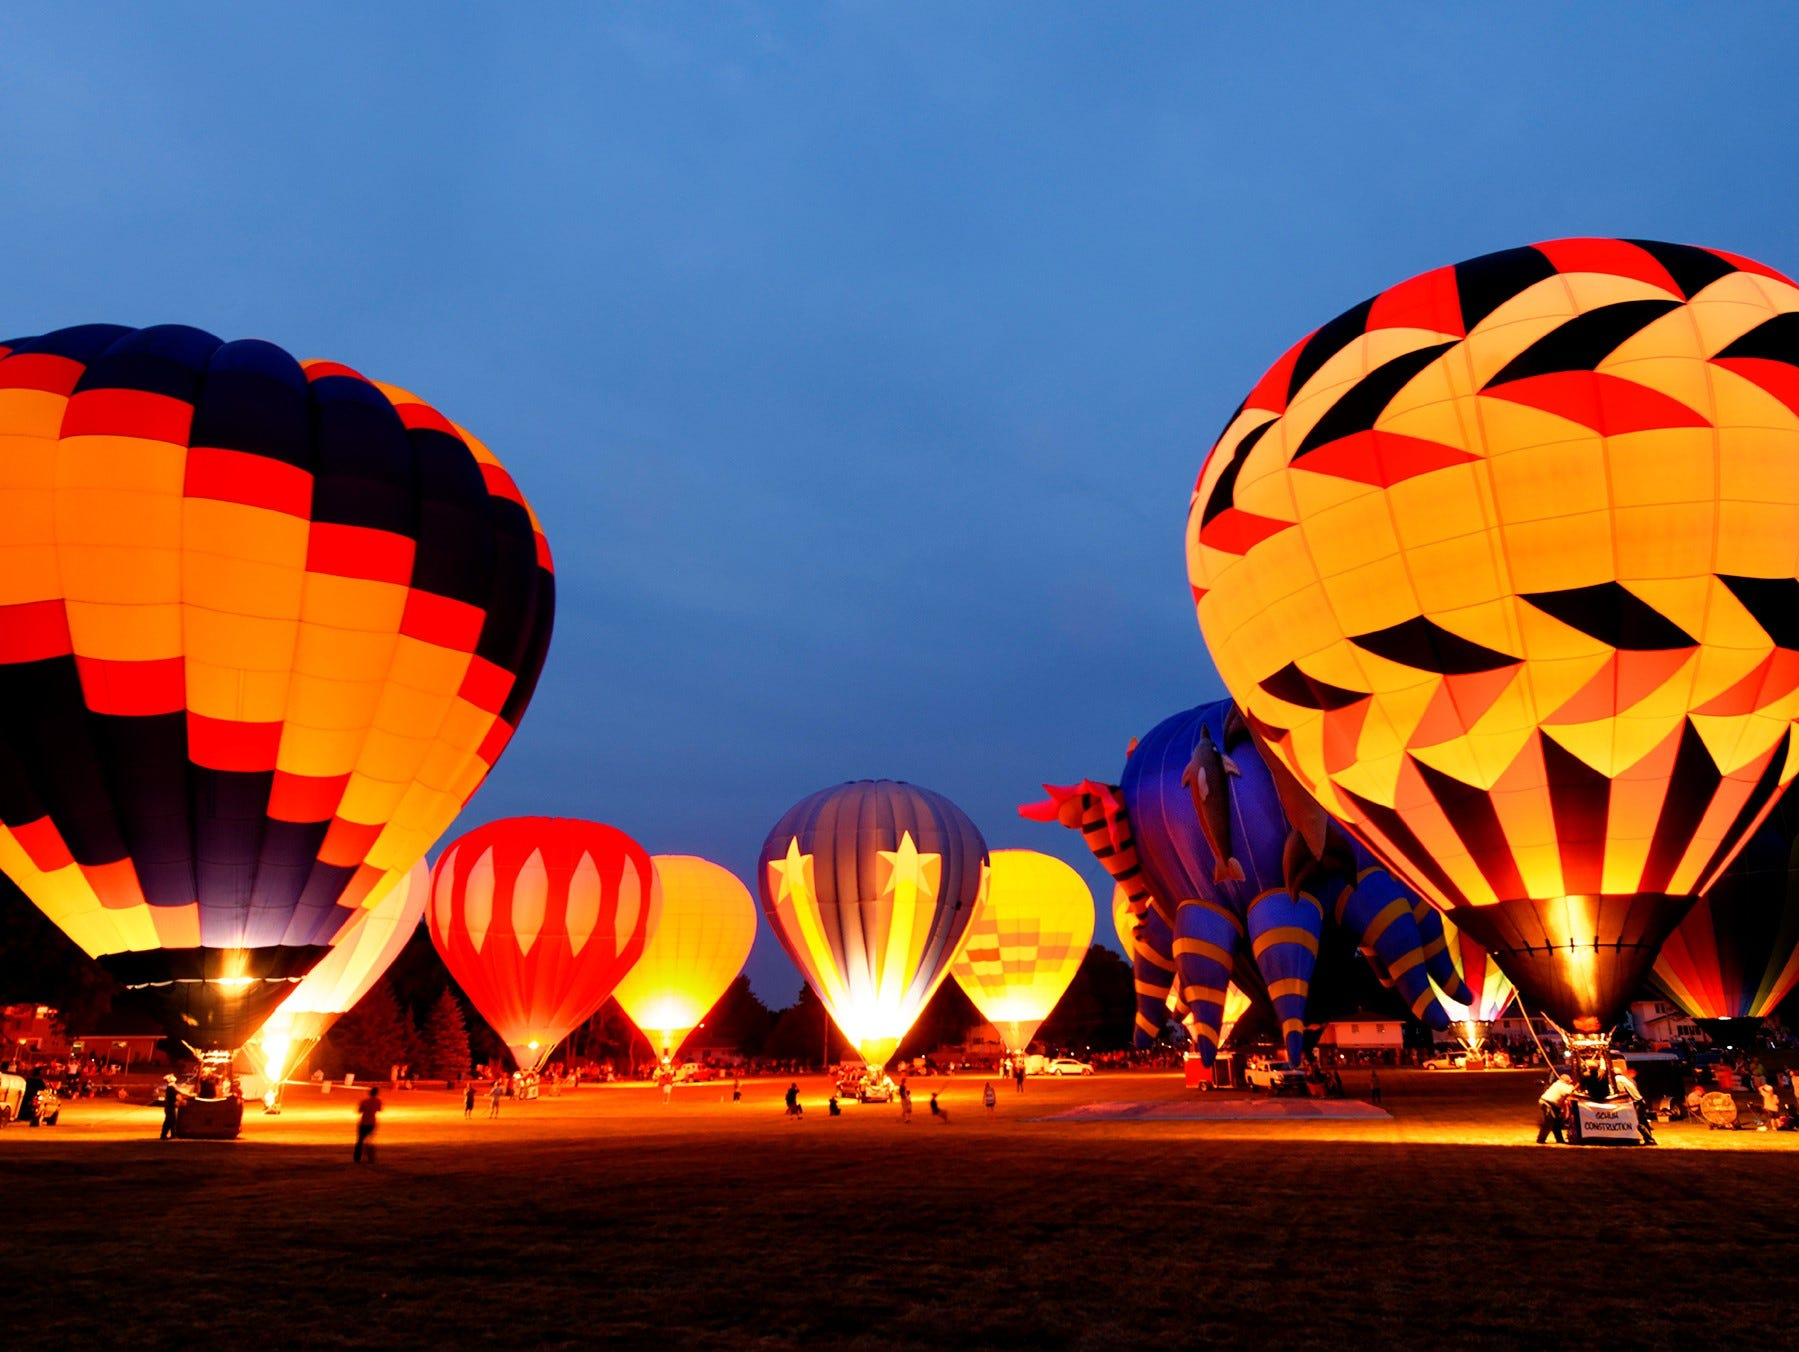 Hot air balloons glow during the Hamburger Fest celebration in Seymour.